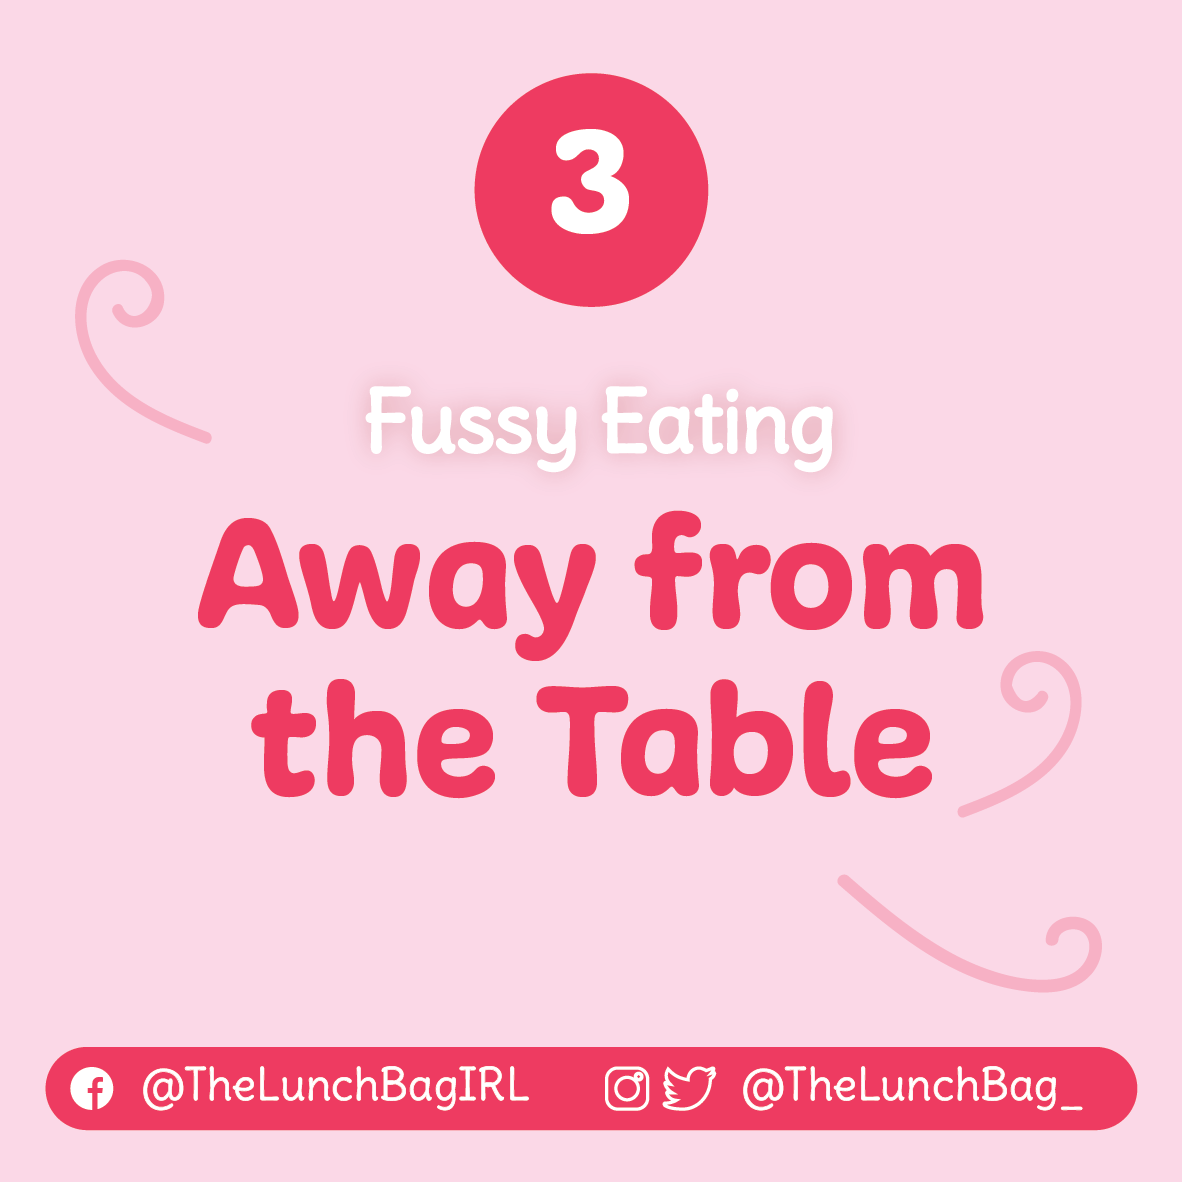 Fussy-eating-blog-away-from-the-table